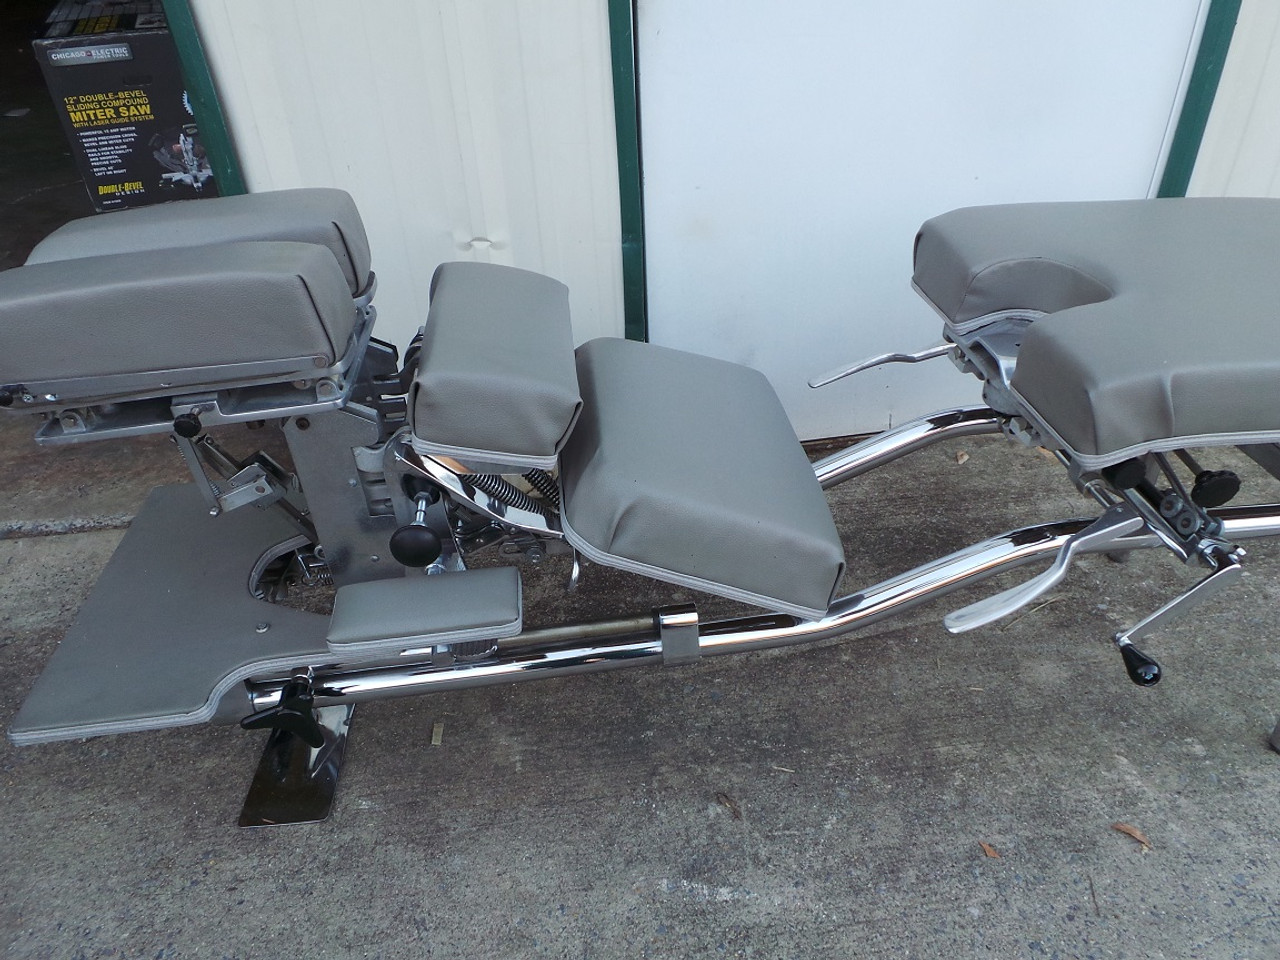 Used Zenith 55F Stationary Table with Cervical Elevated & Breakaway Chest open and in Down position